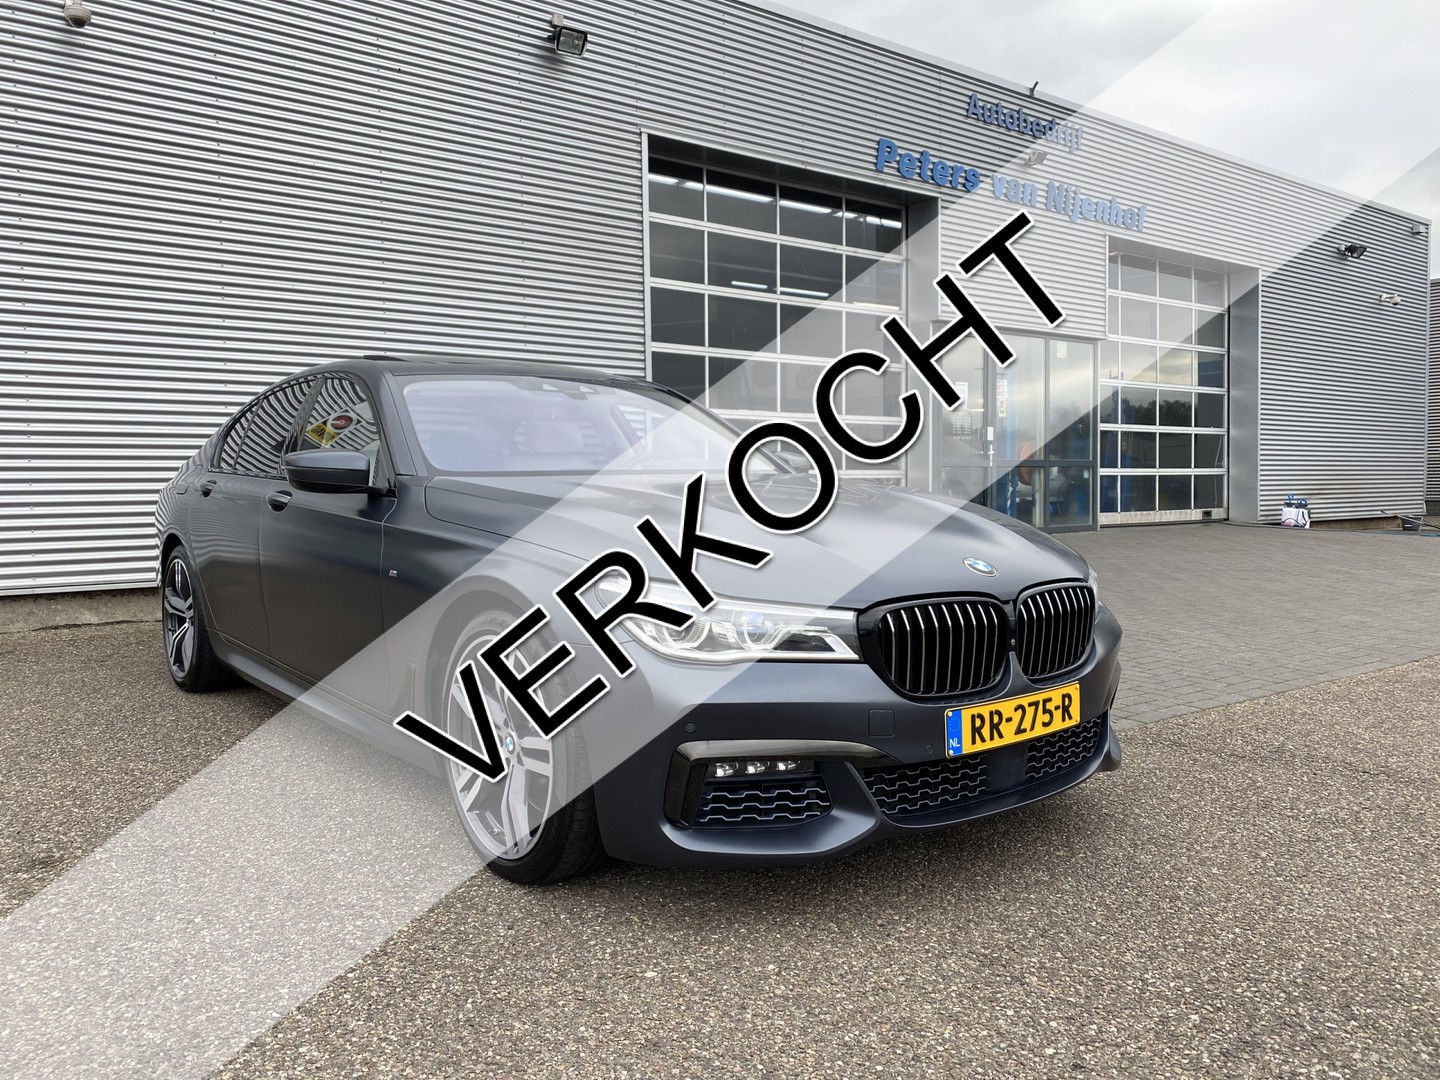 "Bmw 7 serie 750i xdrive high executive m-sportpakket bowers massage head-up panorama 20"" 449pk 70dkm"